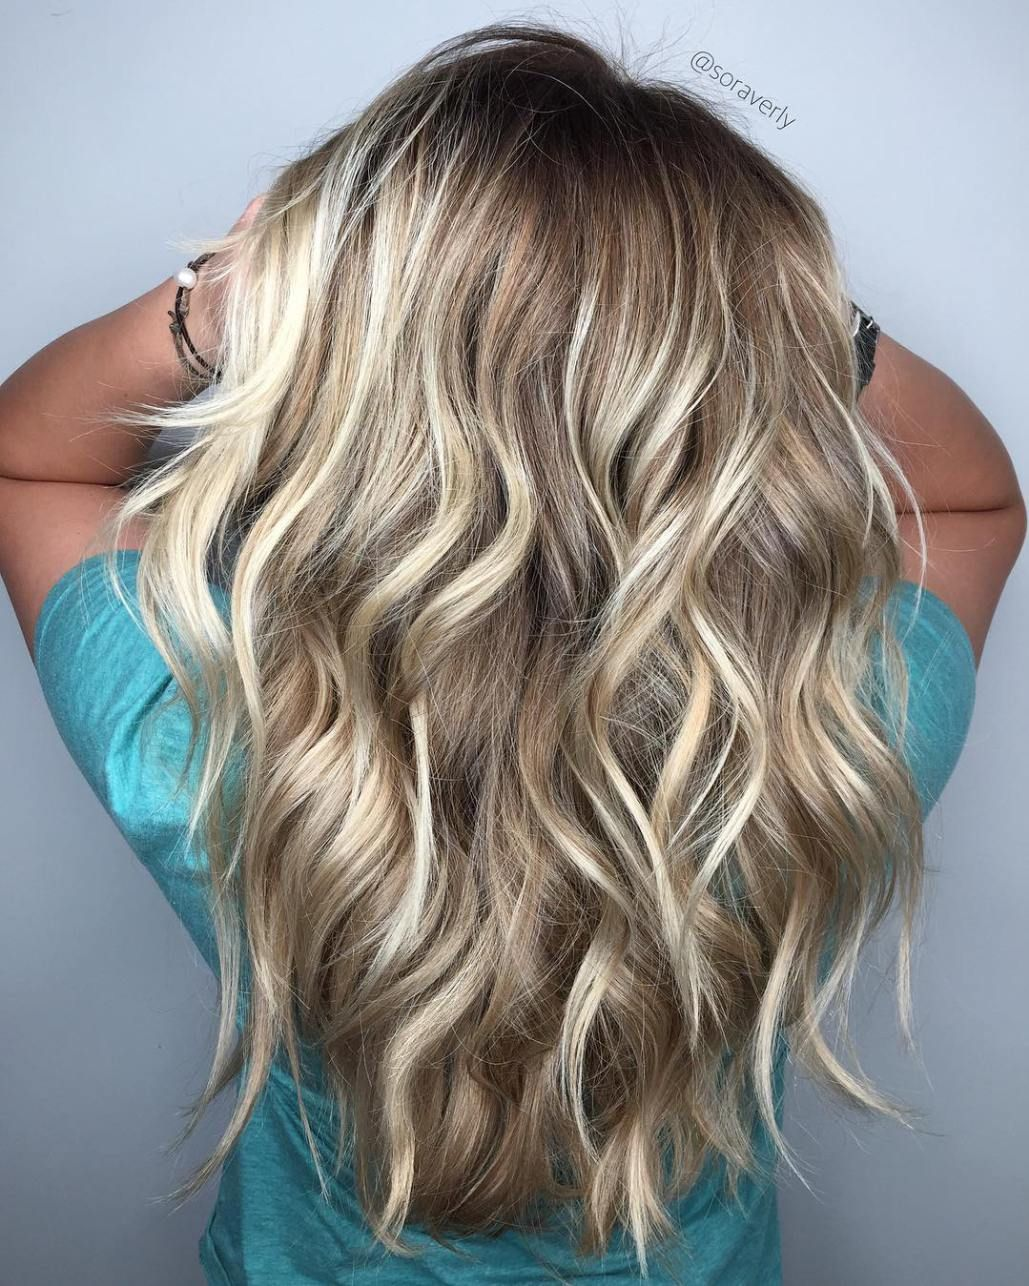 Balayage Hairstyle Classy 90 Balayage Hair Color Ideas With Blonde Brown And Caramel